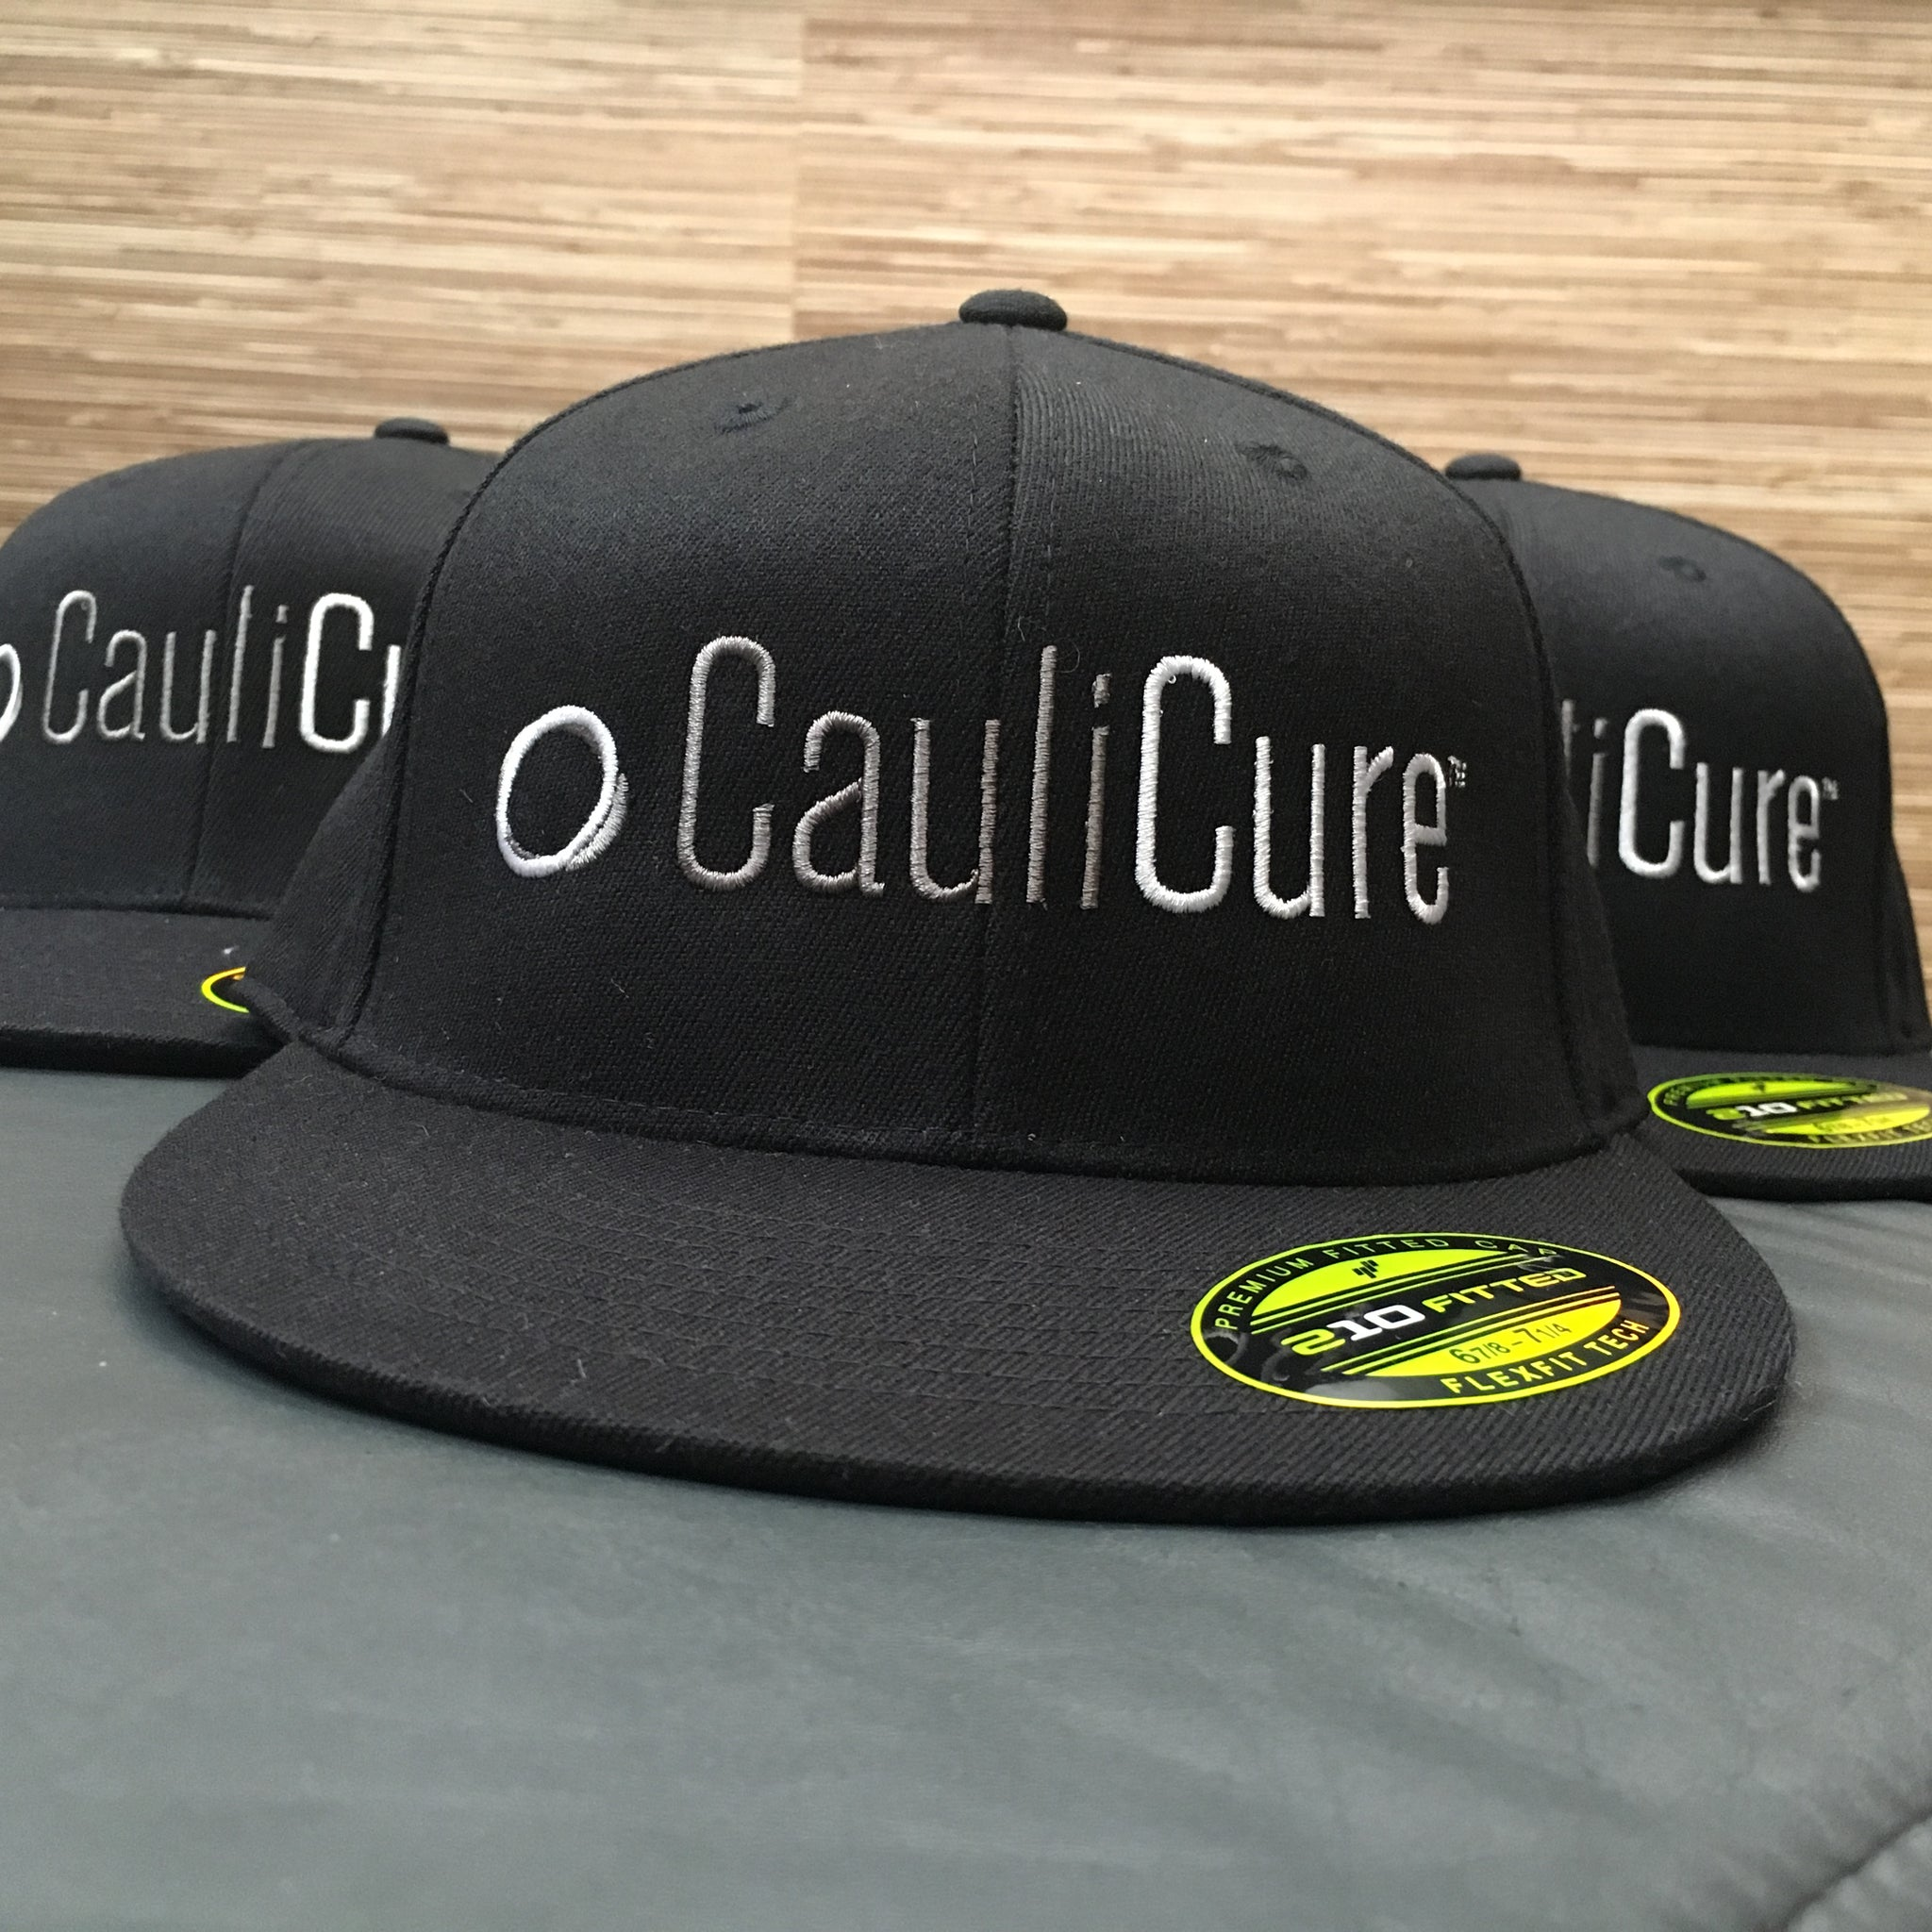 Caulicure Cauliflower ear prevention solution flat bill hat